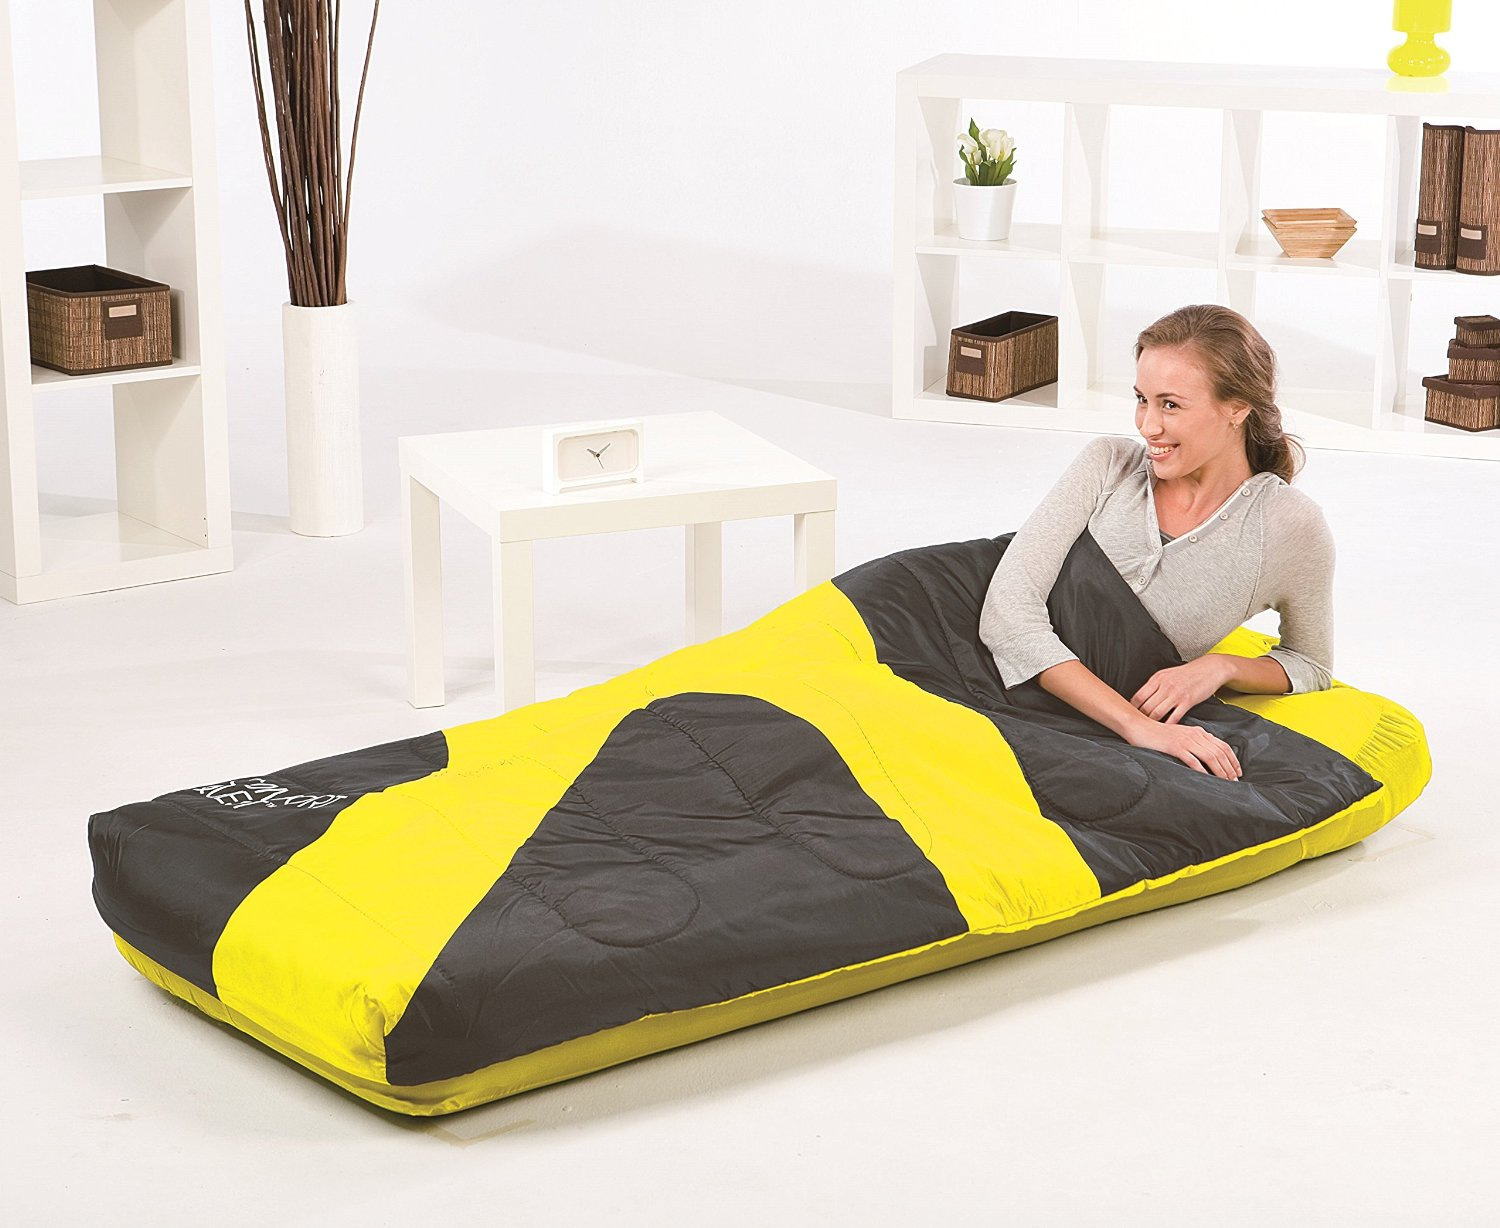 Diy gt furniture gt beds amp mattresses gt inflatable mattresses airbeds